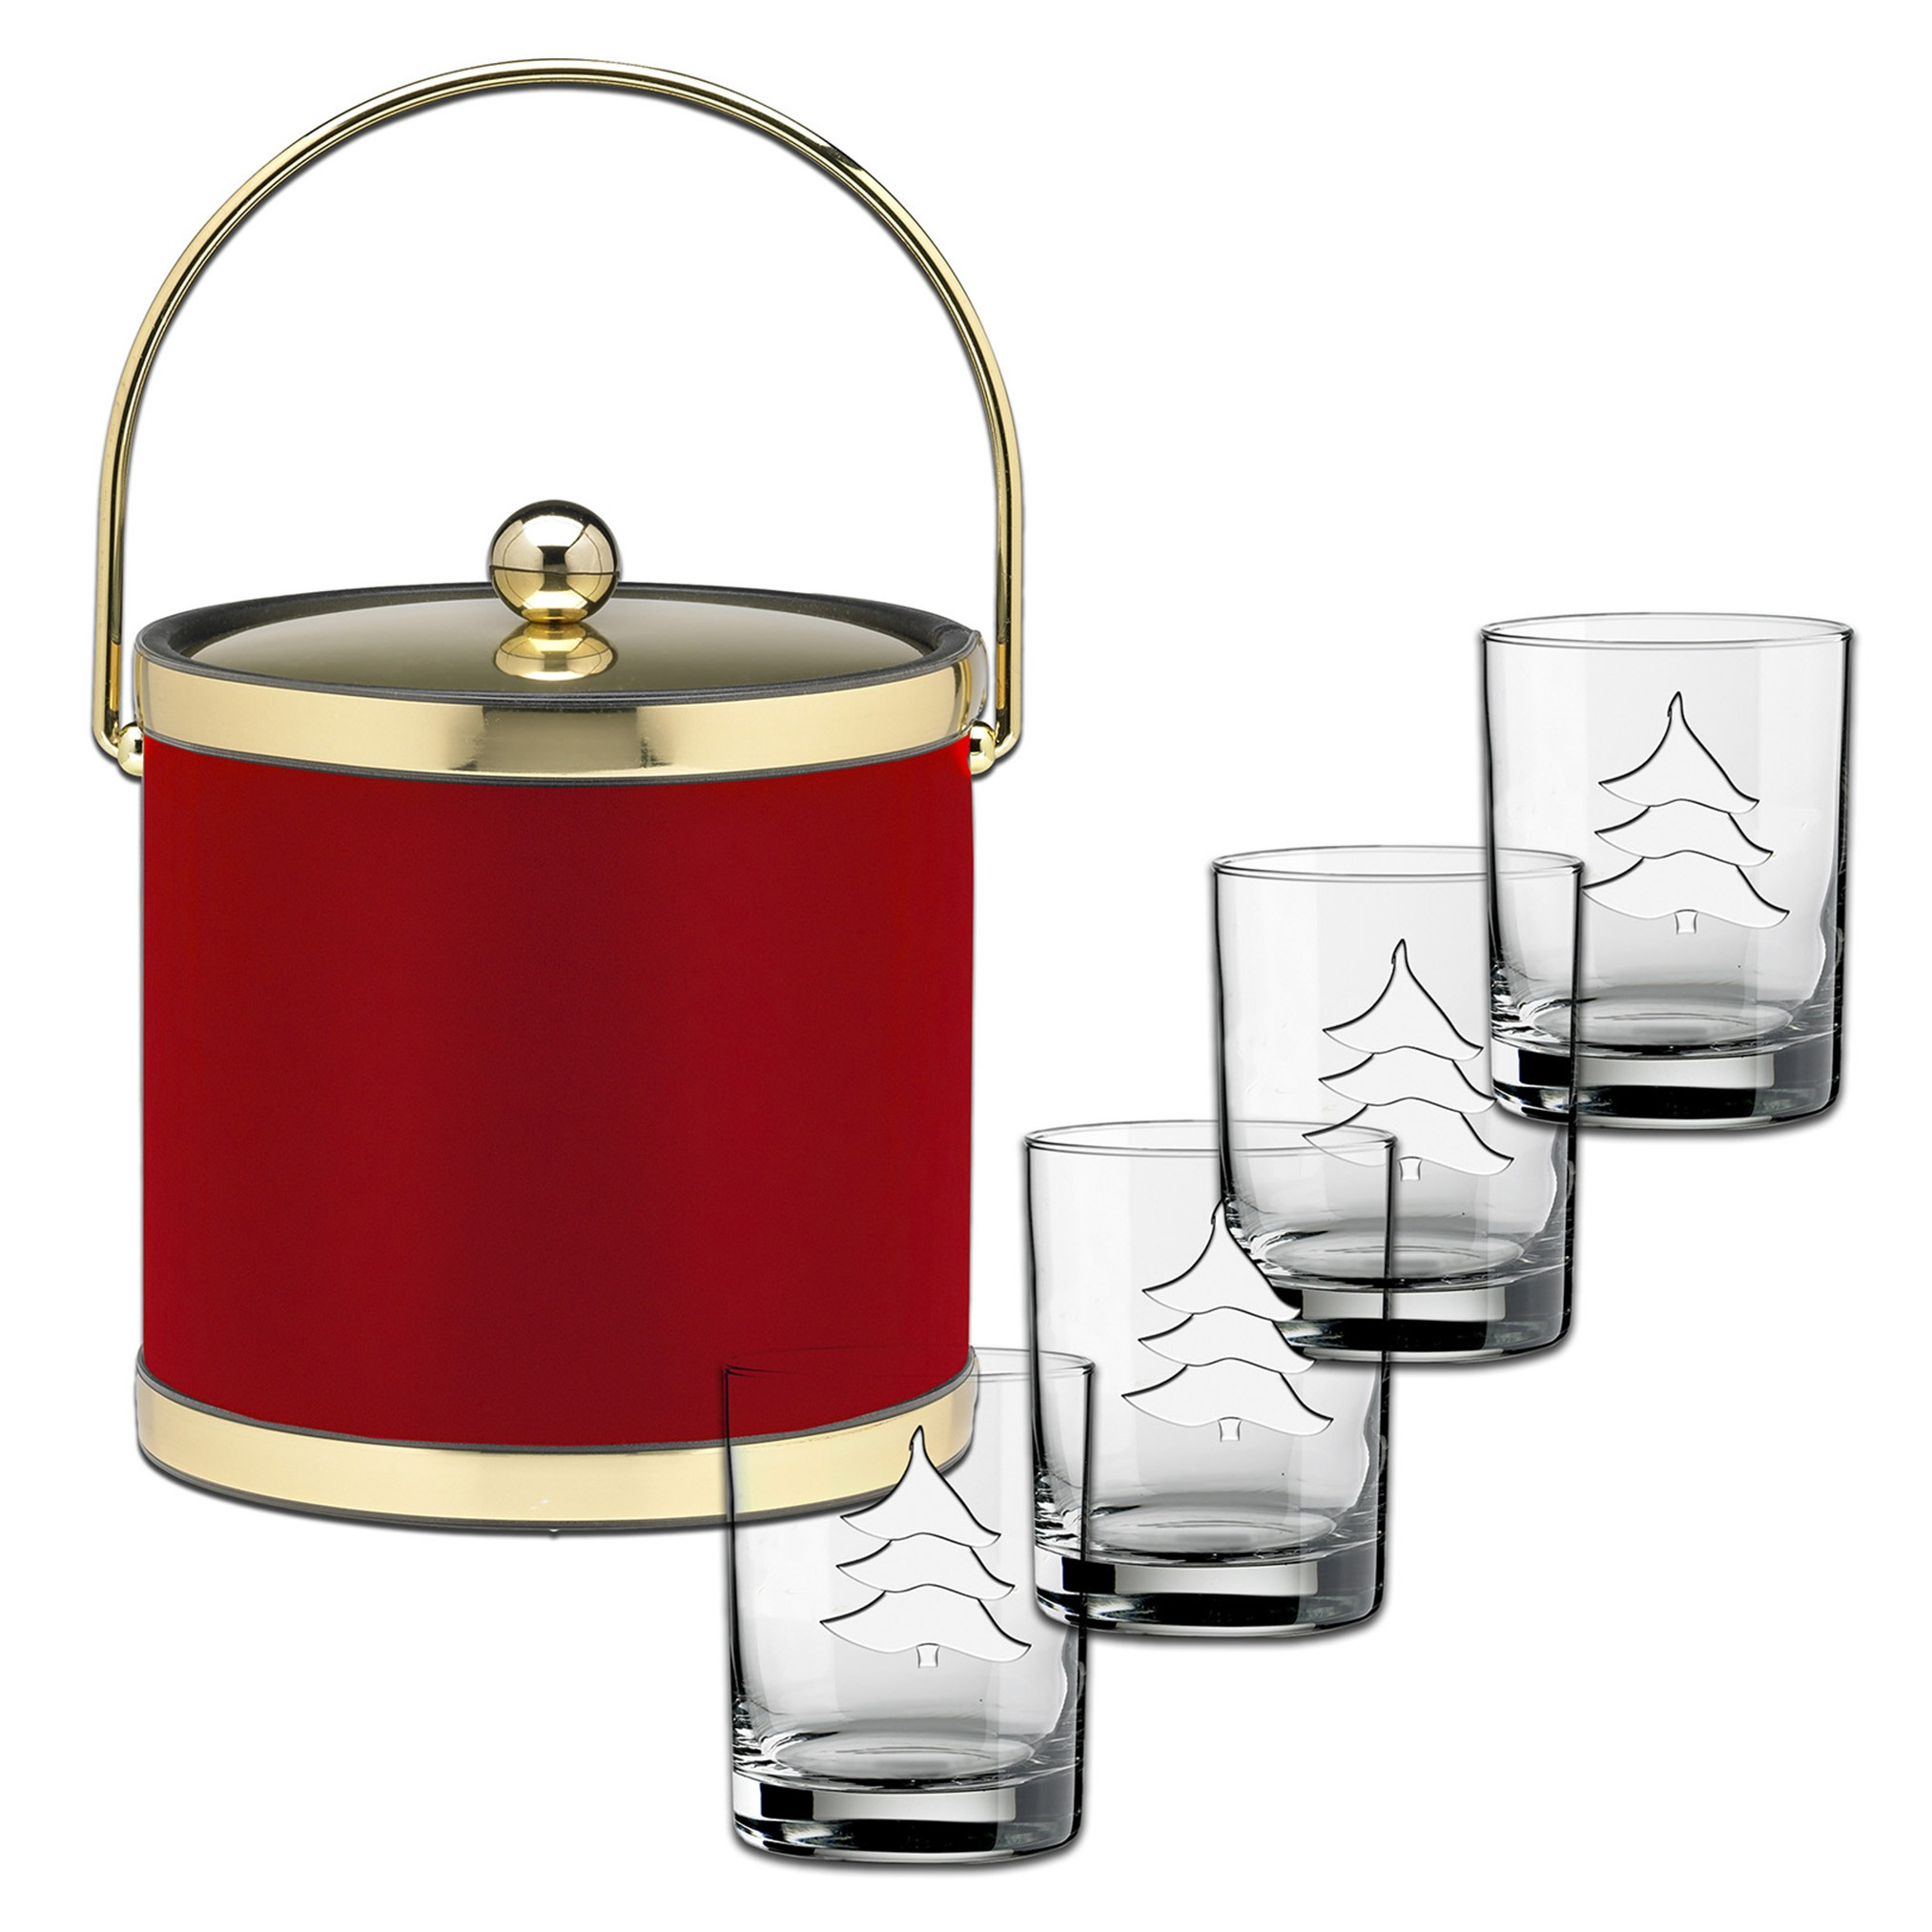 52585 SOPHISTICATES RED W/ BRUSHED BRASS 5 PC HOLIDAY SET, 3 QT.